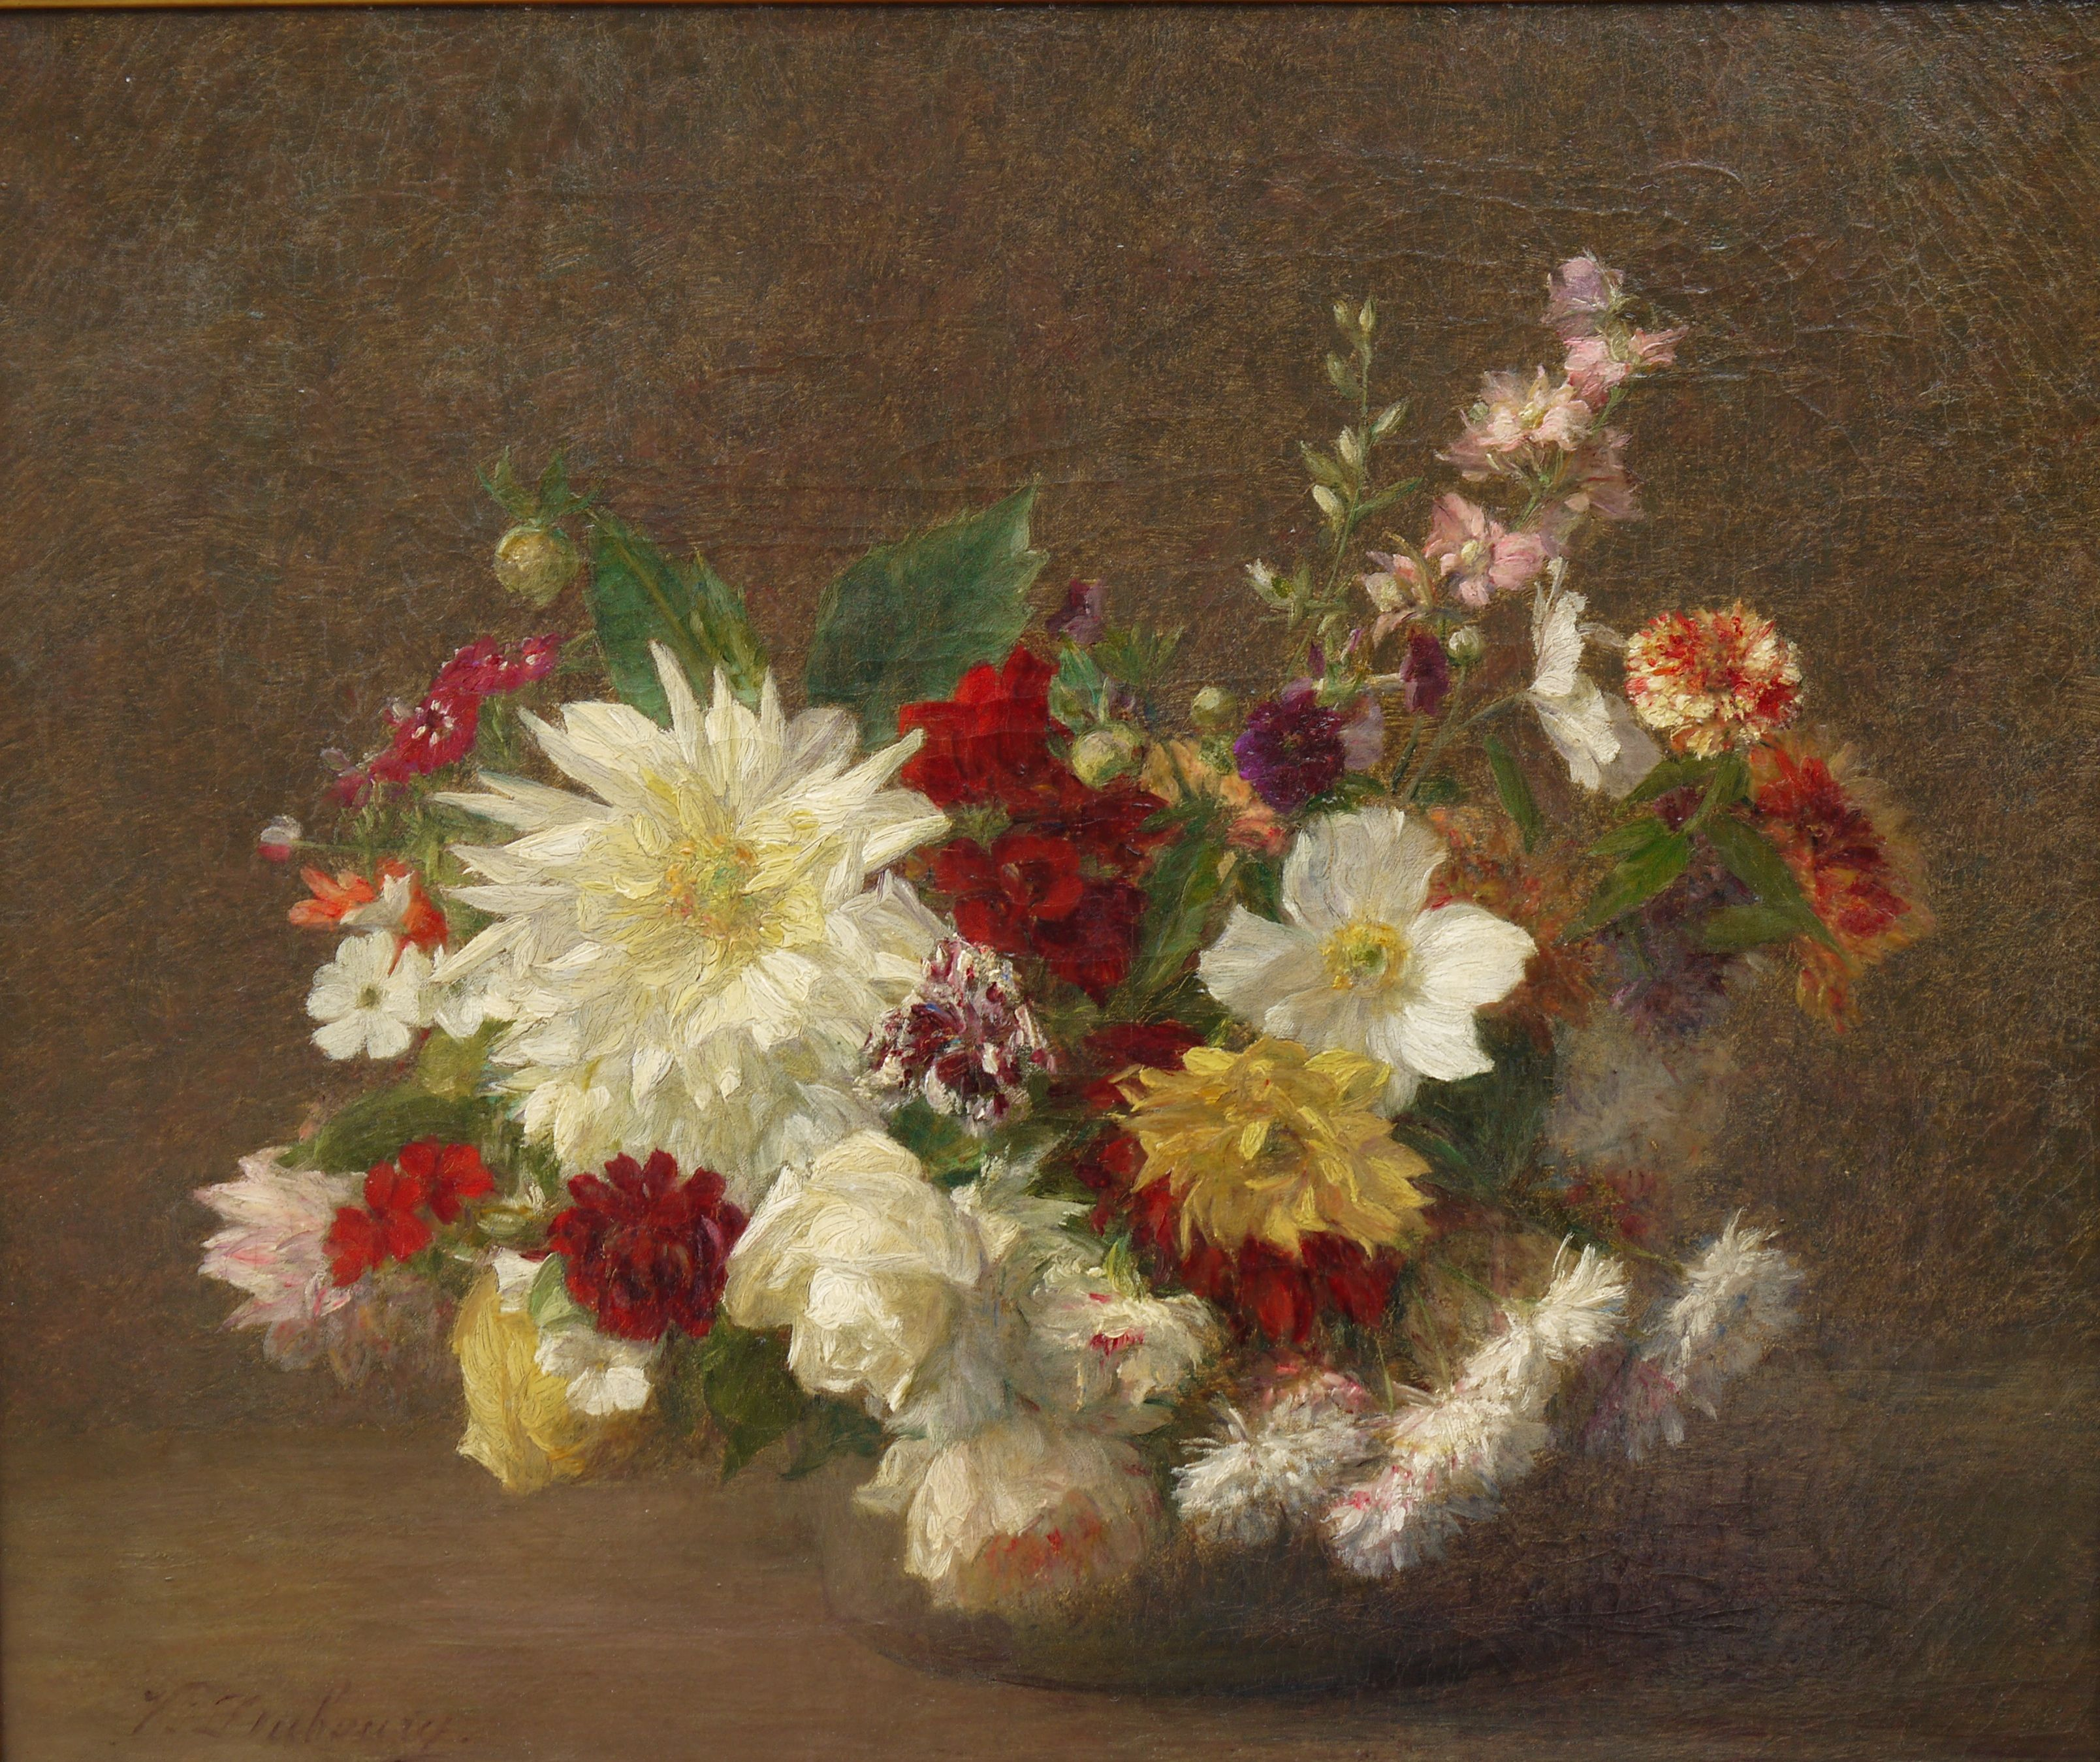 VICTORIA FANTIN-LATOUR the canon gallery 19th modern european victorian oil art dealer uk london oundle